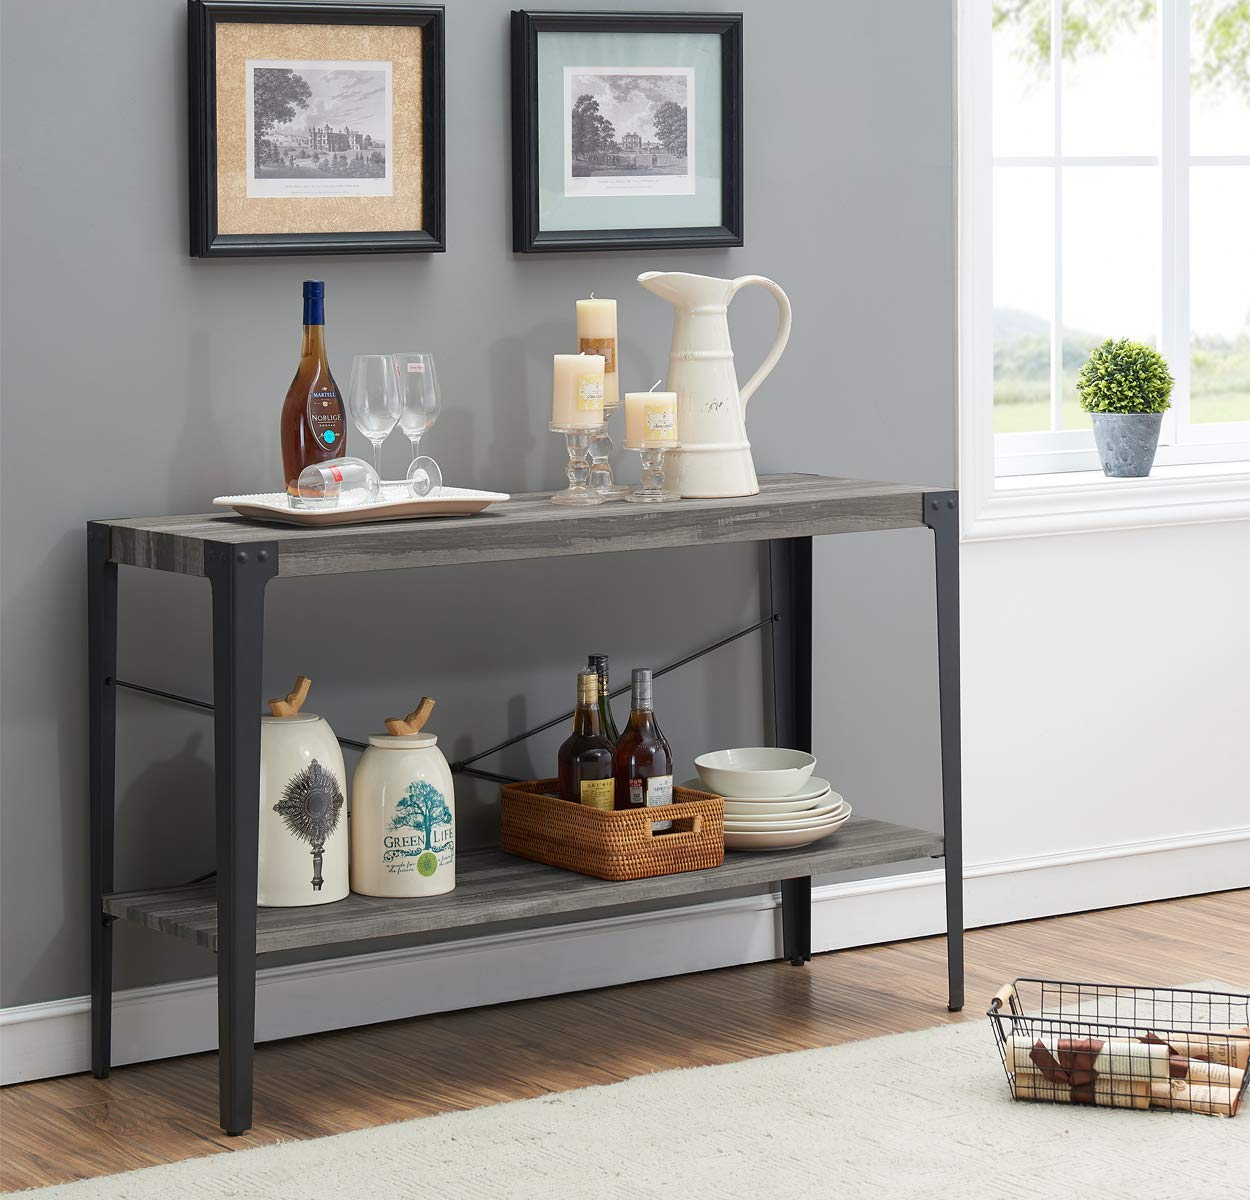 O&K Furniture 2-Tier Industrial Sofa Table, Metal Hall Console Table with Storage Shelf for Living Room and Entryway, Gray Finish(1-Pcs) by O&K FURNITURE